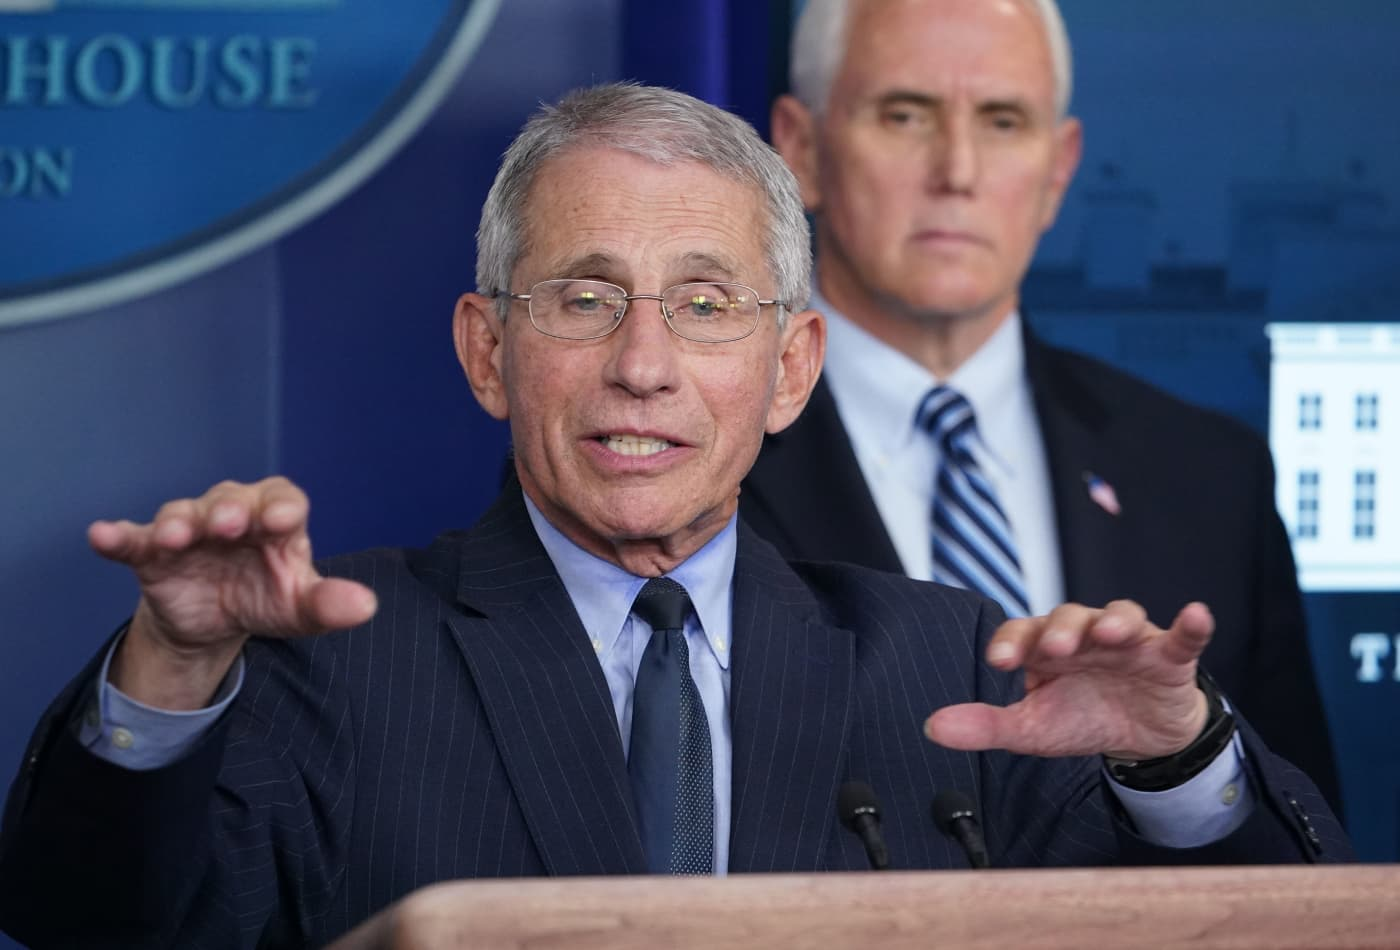 White House health advisor Fauci says we may never get back to 'normal' after coronavirus pandemic